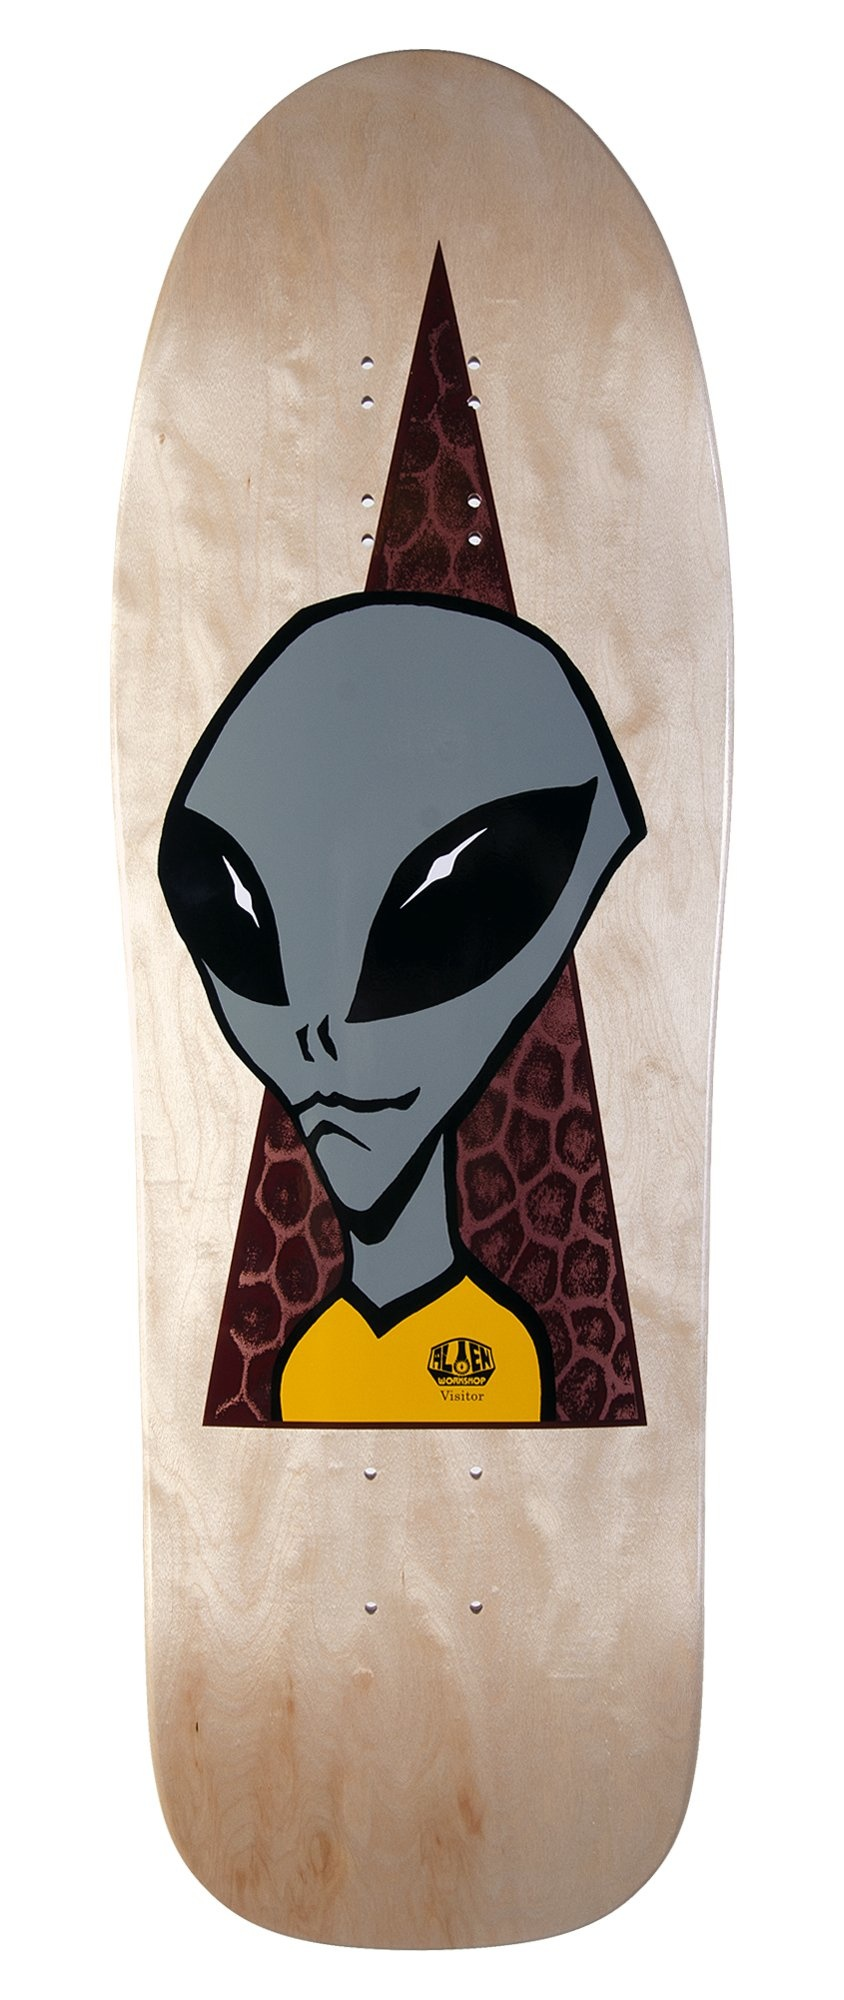 Alien Workshop Alien Workshop Visitor 1990 Reissue Deck - 9.675 x 31.675